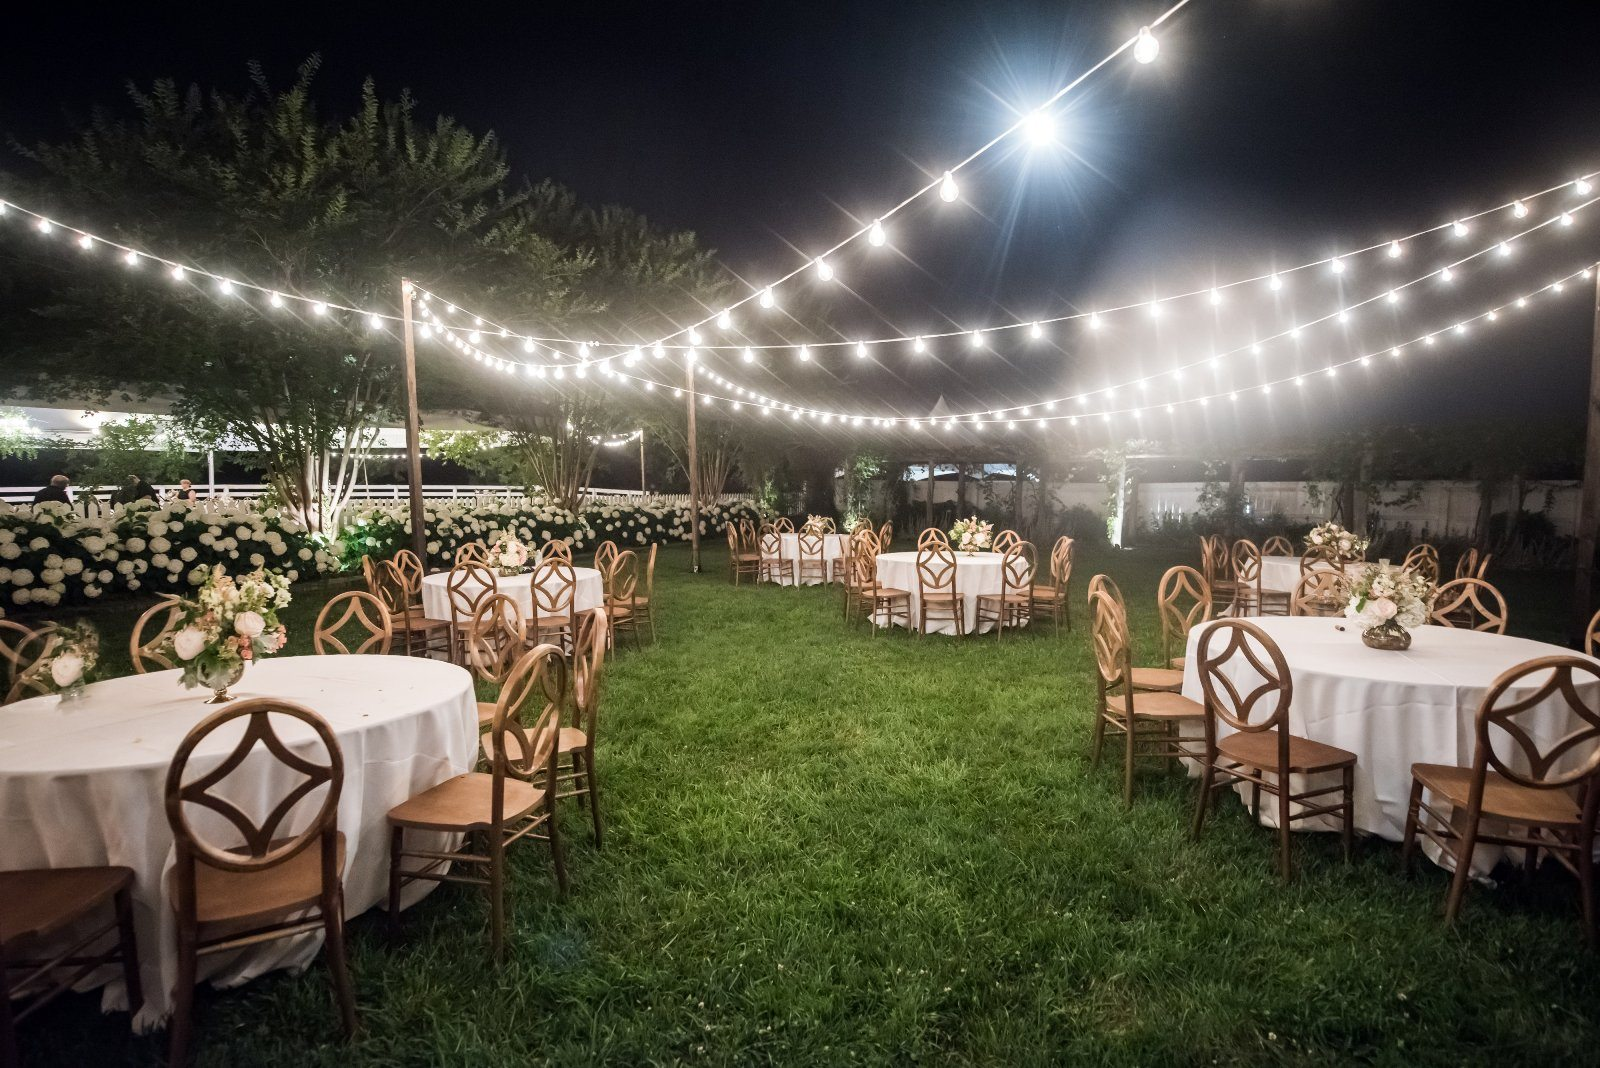 Southern events party rental company archives southern events planning an event in middle tennessee or the nashville area and need rentals reach out to team southern for more information junglespirit Images